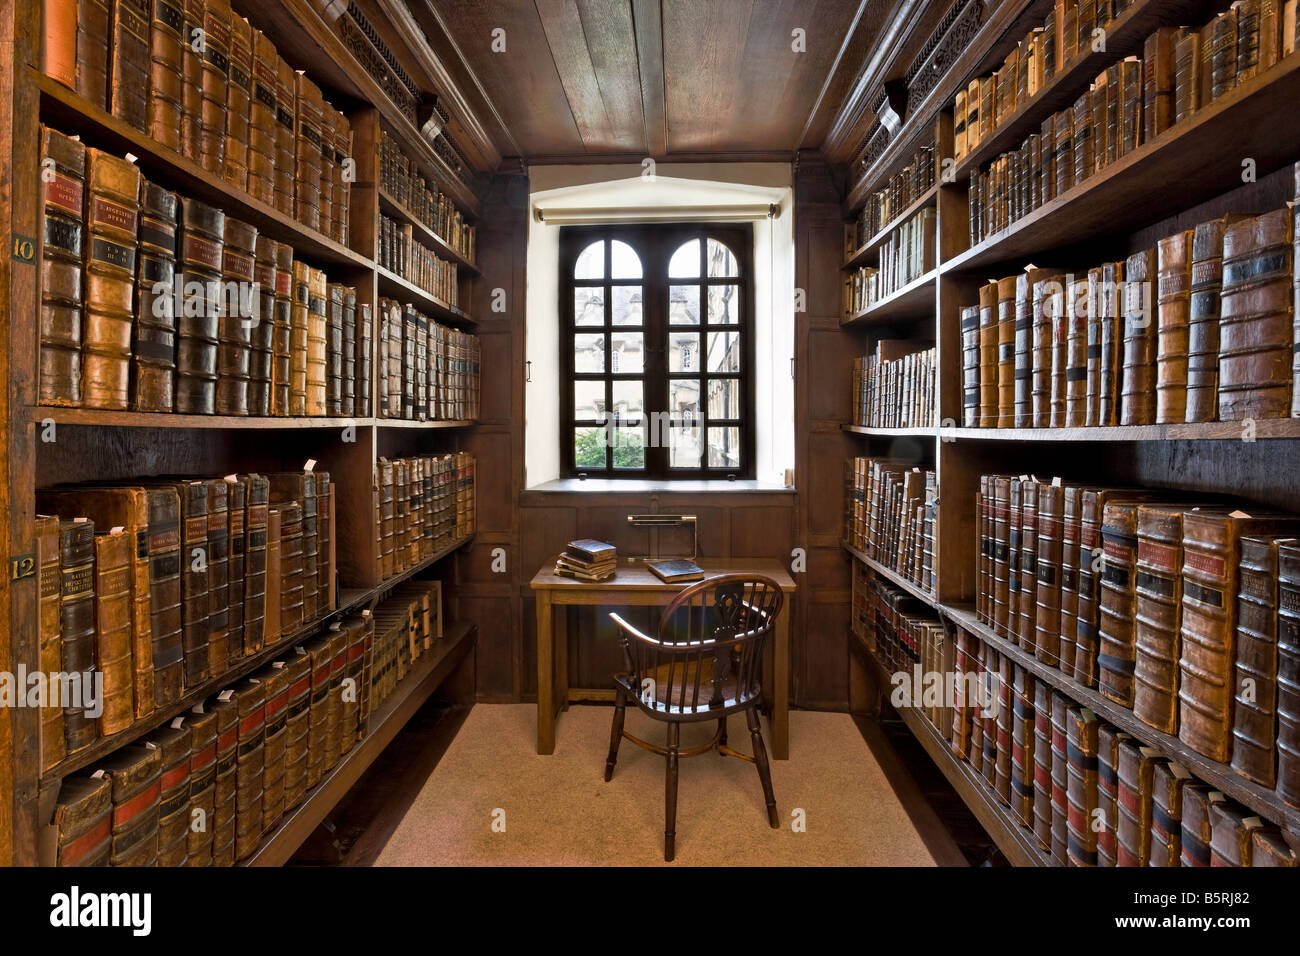 oxford university thesis library Oxford university research archive (ora) is an institutional repository for the university of oxford and is home to the scholarly output of its research members it holds publications, theses and research data.